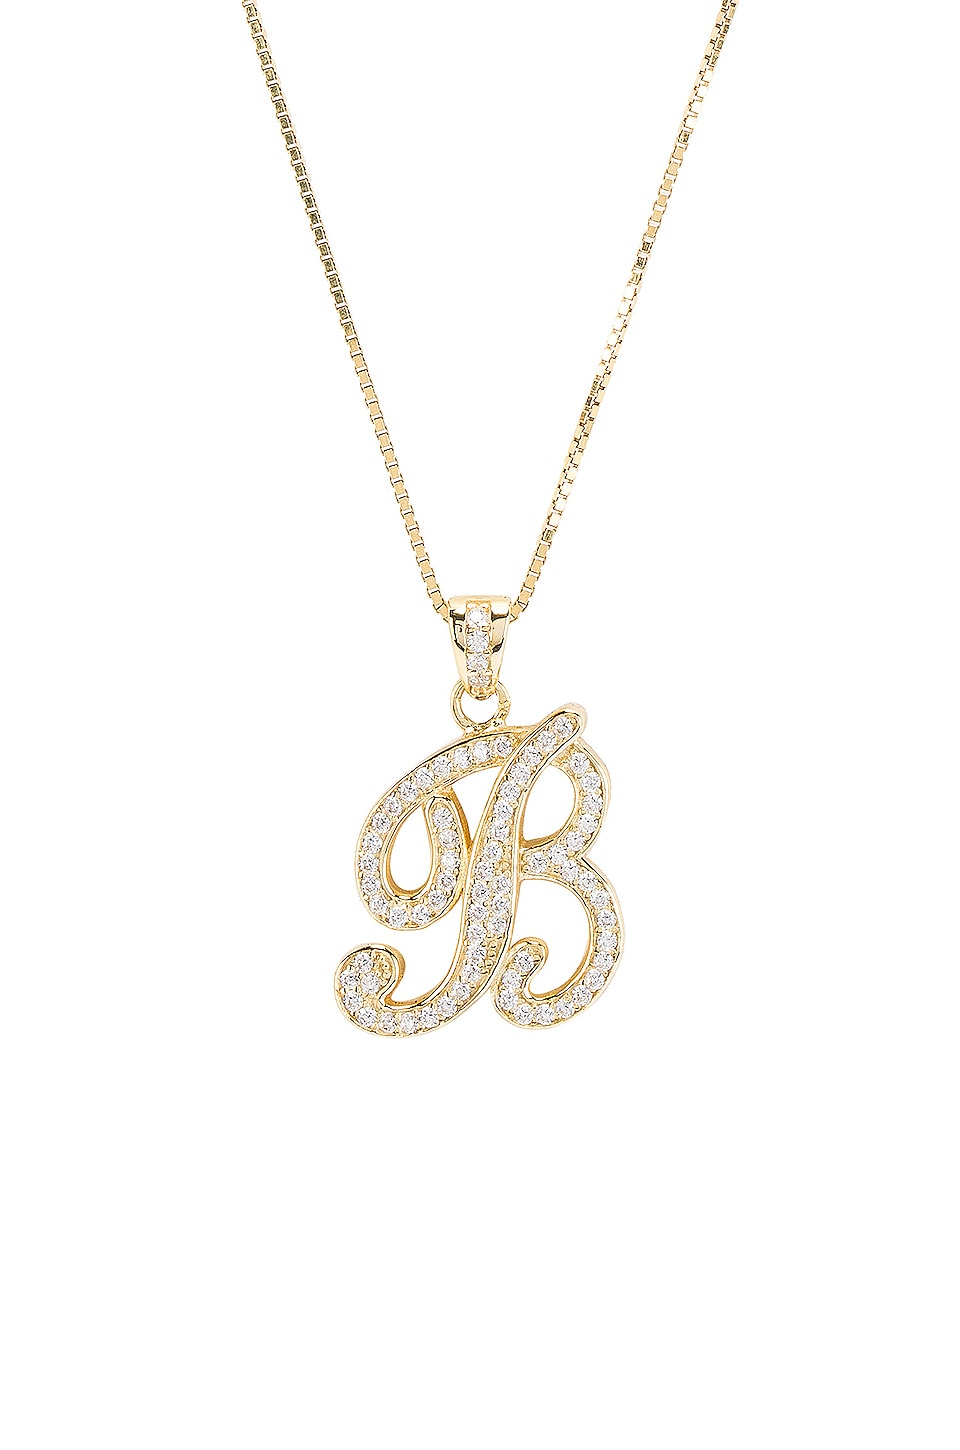 The M Jewelers NY ОЖЕРЕЛЬЕ ICED OUT SCRIPT INITIAL